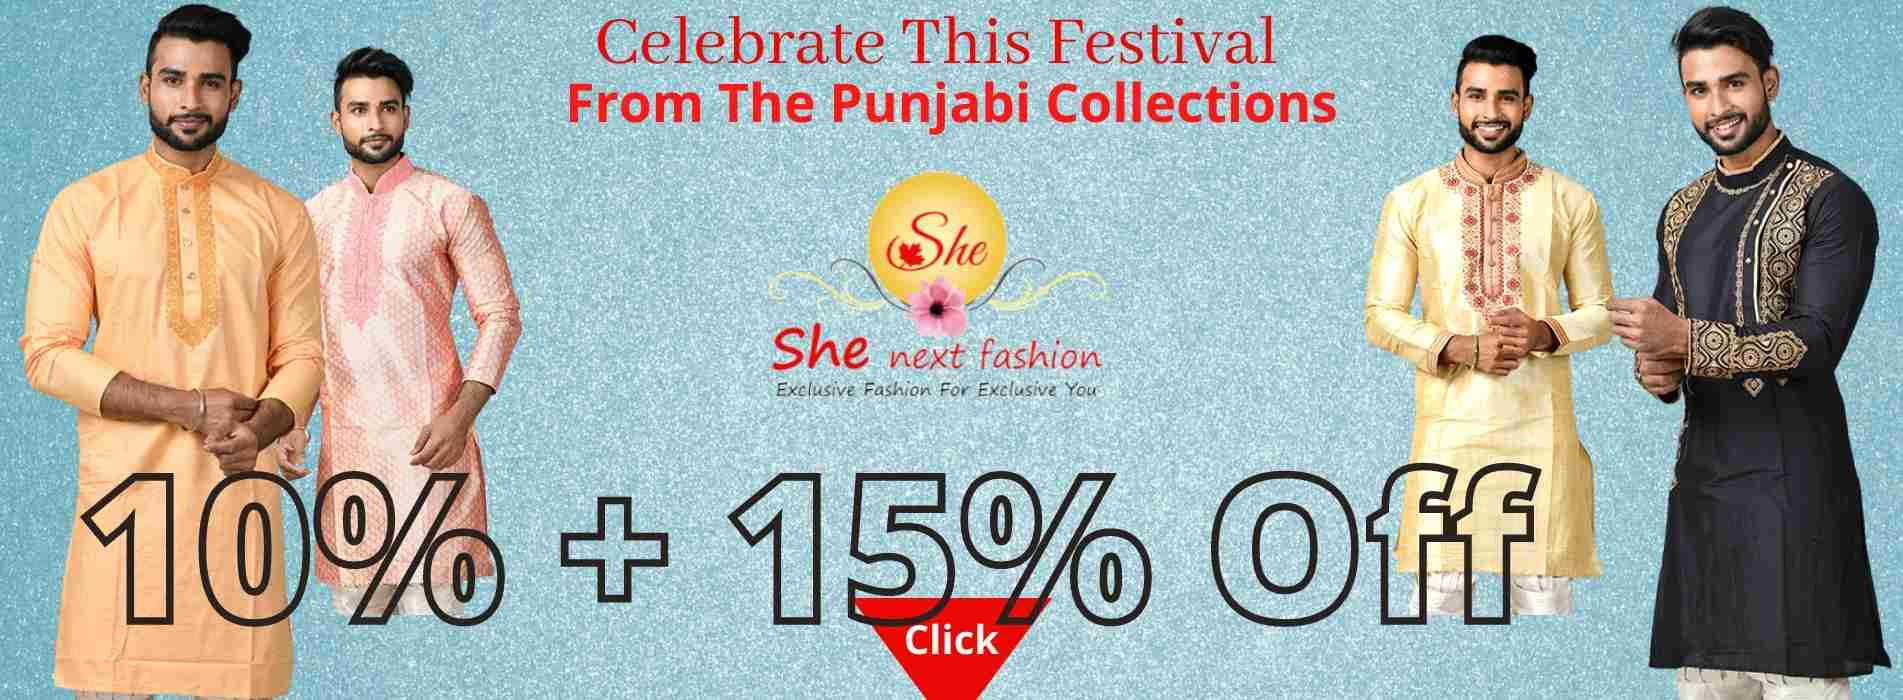 men-puja-collections